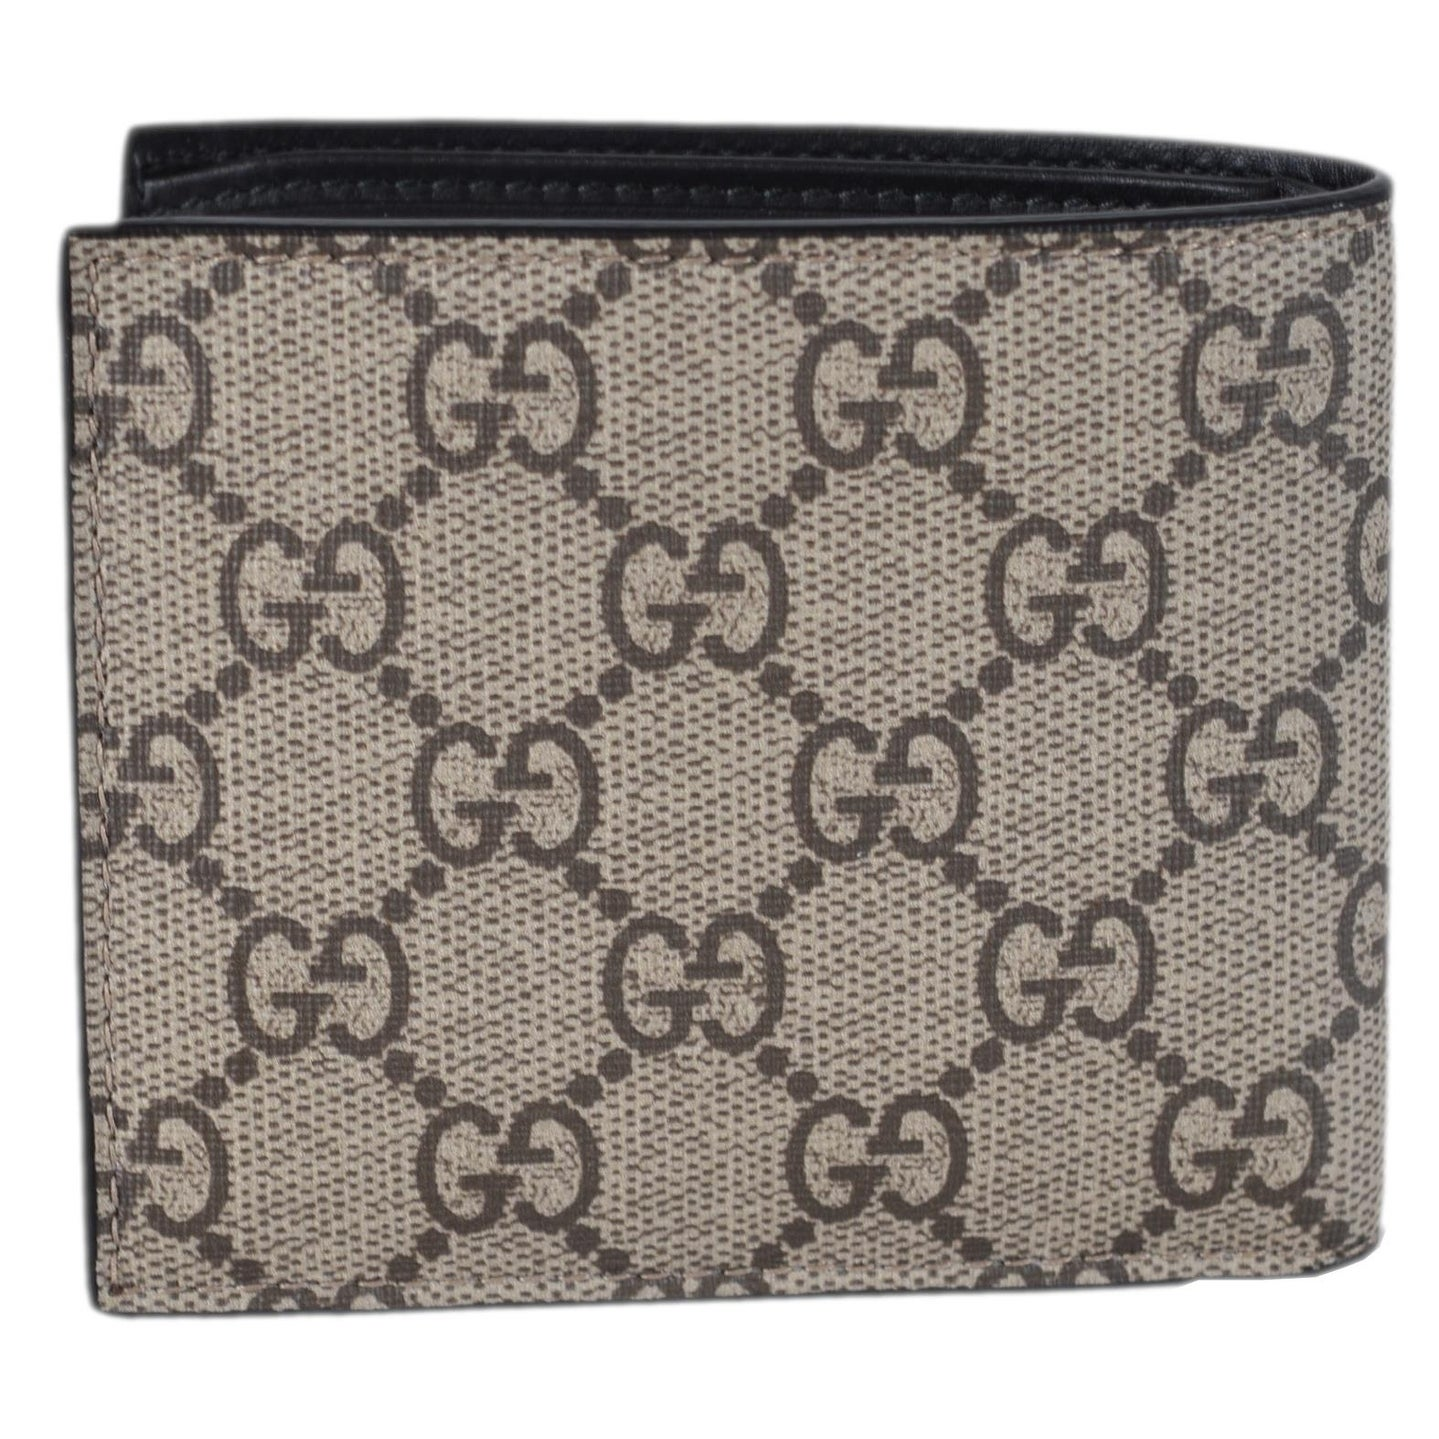 bfd161e64eae Shop Gucci Men's Beige GG Supreme Canvas Angry Bengal Tiger Bifold Wallet -  measures 4.25 x 3.5 inches - Free Shipping Today - Overstock - 25435884